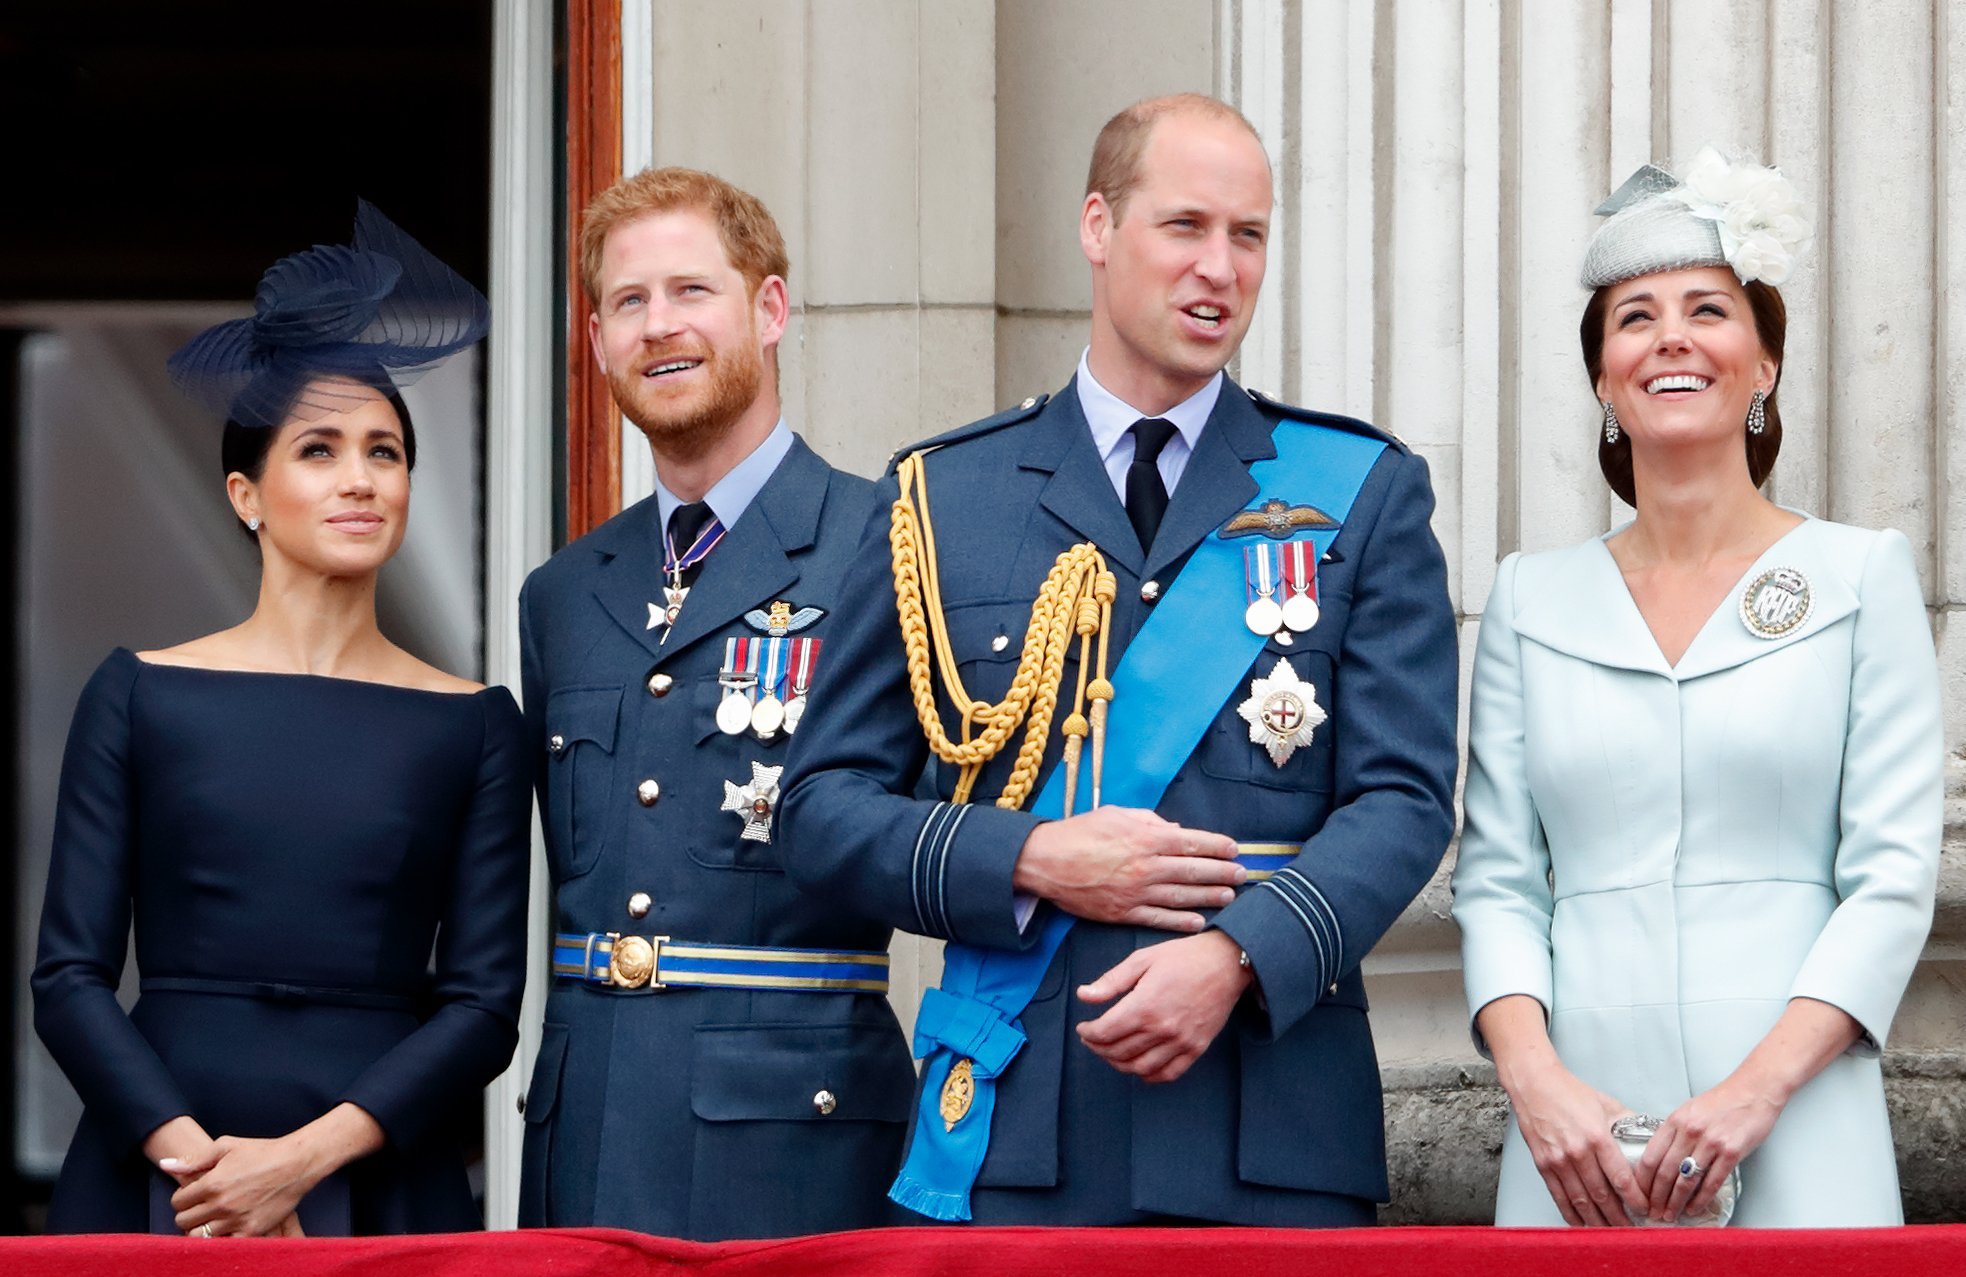 Meghan Markle, Prince Harry, Prince William and Kate Middleton observe a flypast to mark the Royal Air Force Centenary at the Buckingham Palace on July 10, 2018 | Photo: Getty Images